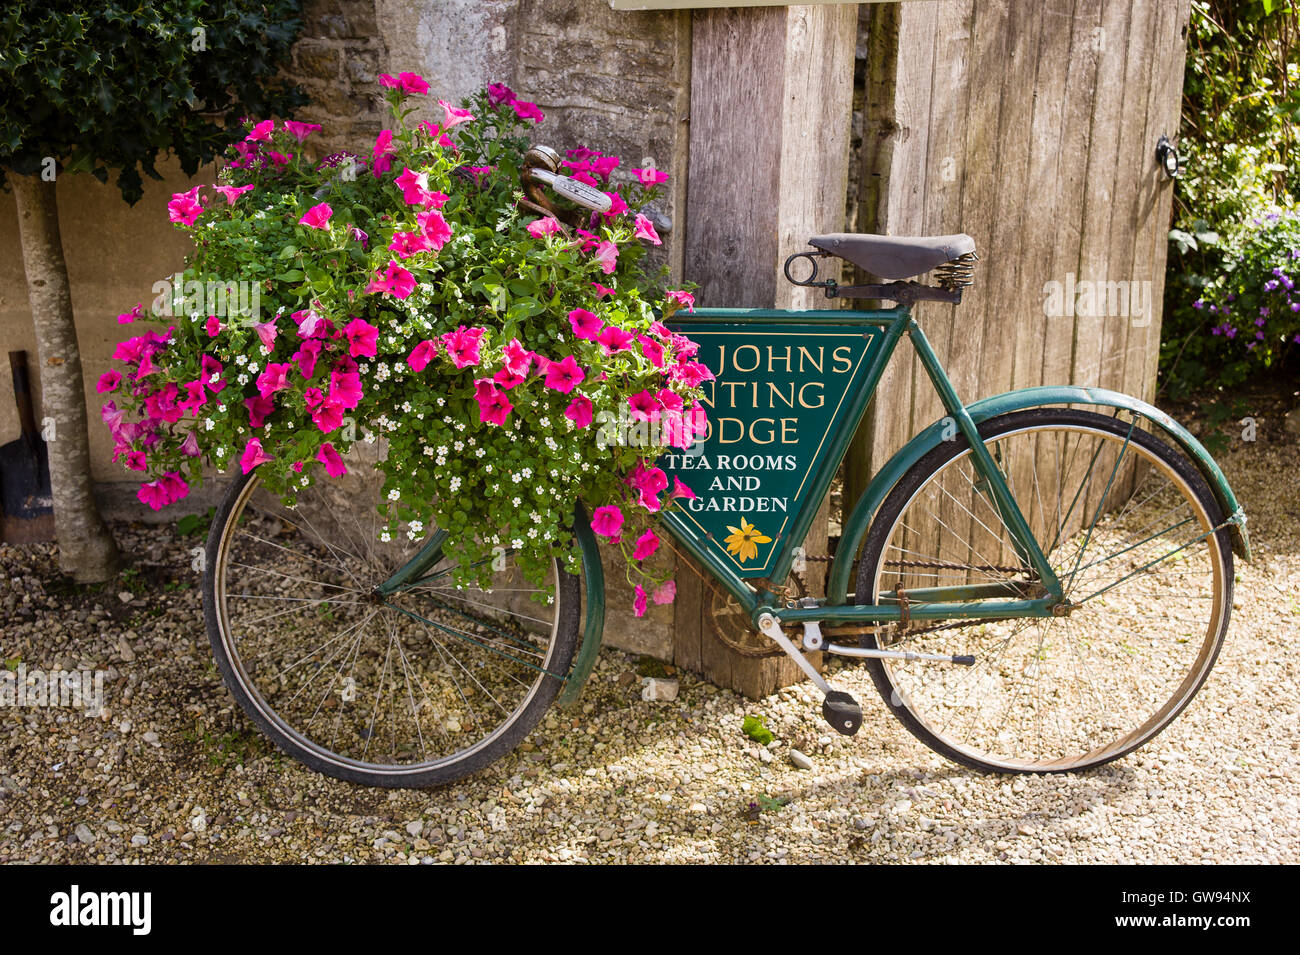 Pink petunias and bacopa in flower decorate an old bicycle outside a village tearooms in UK - Stock Image